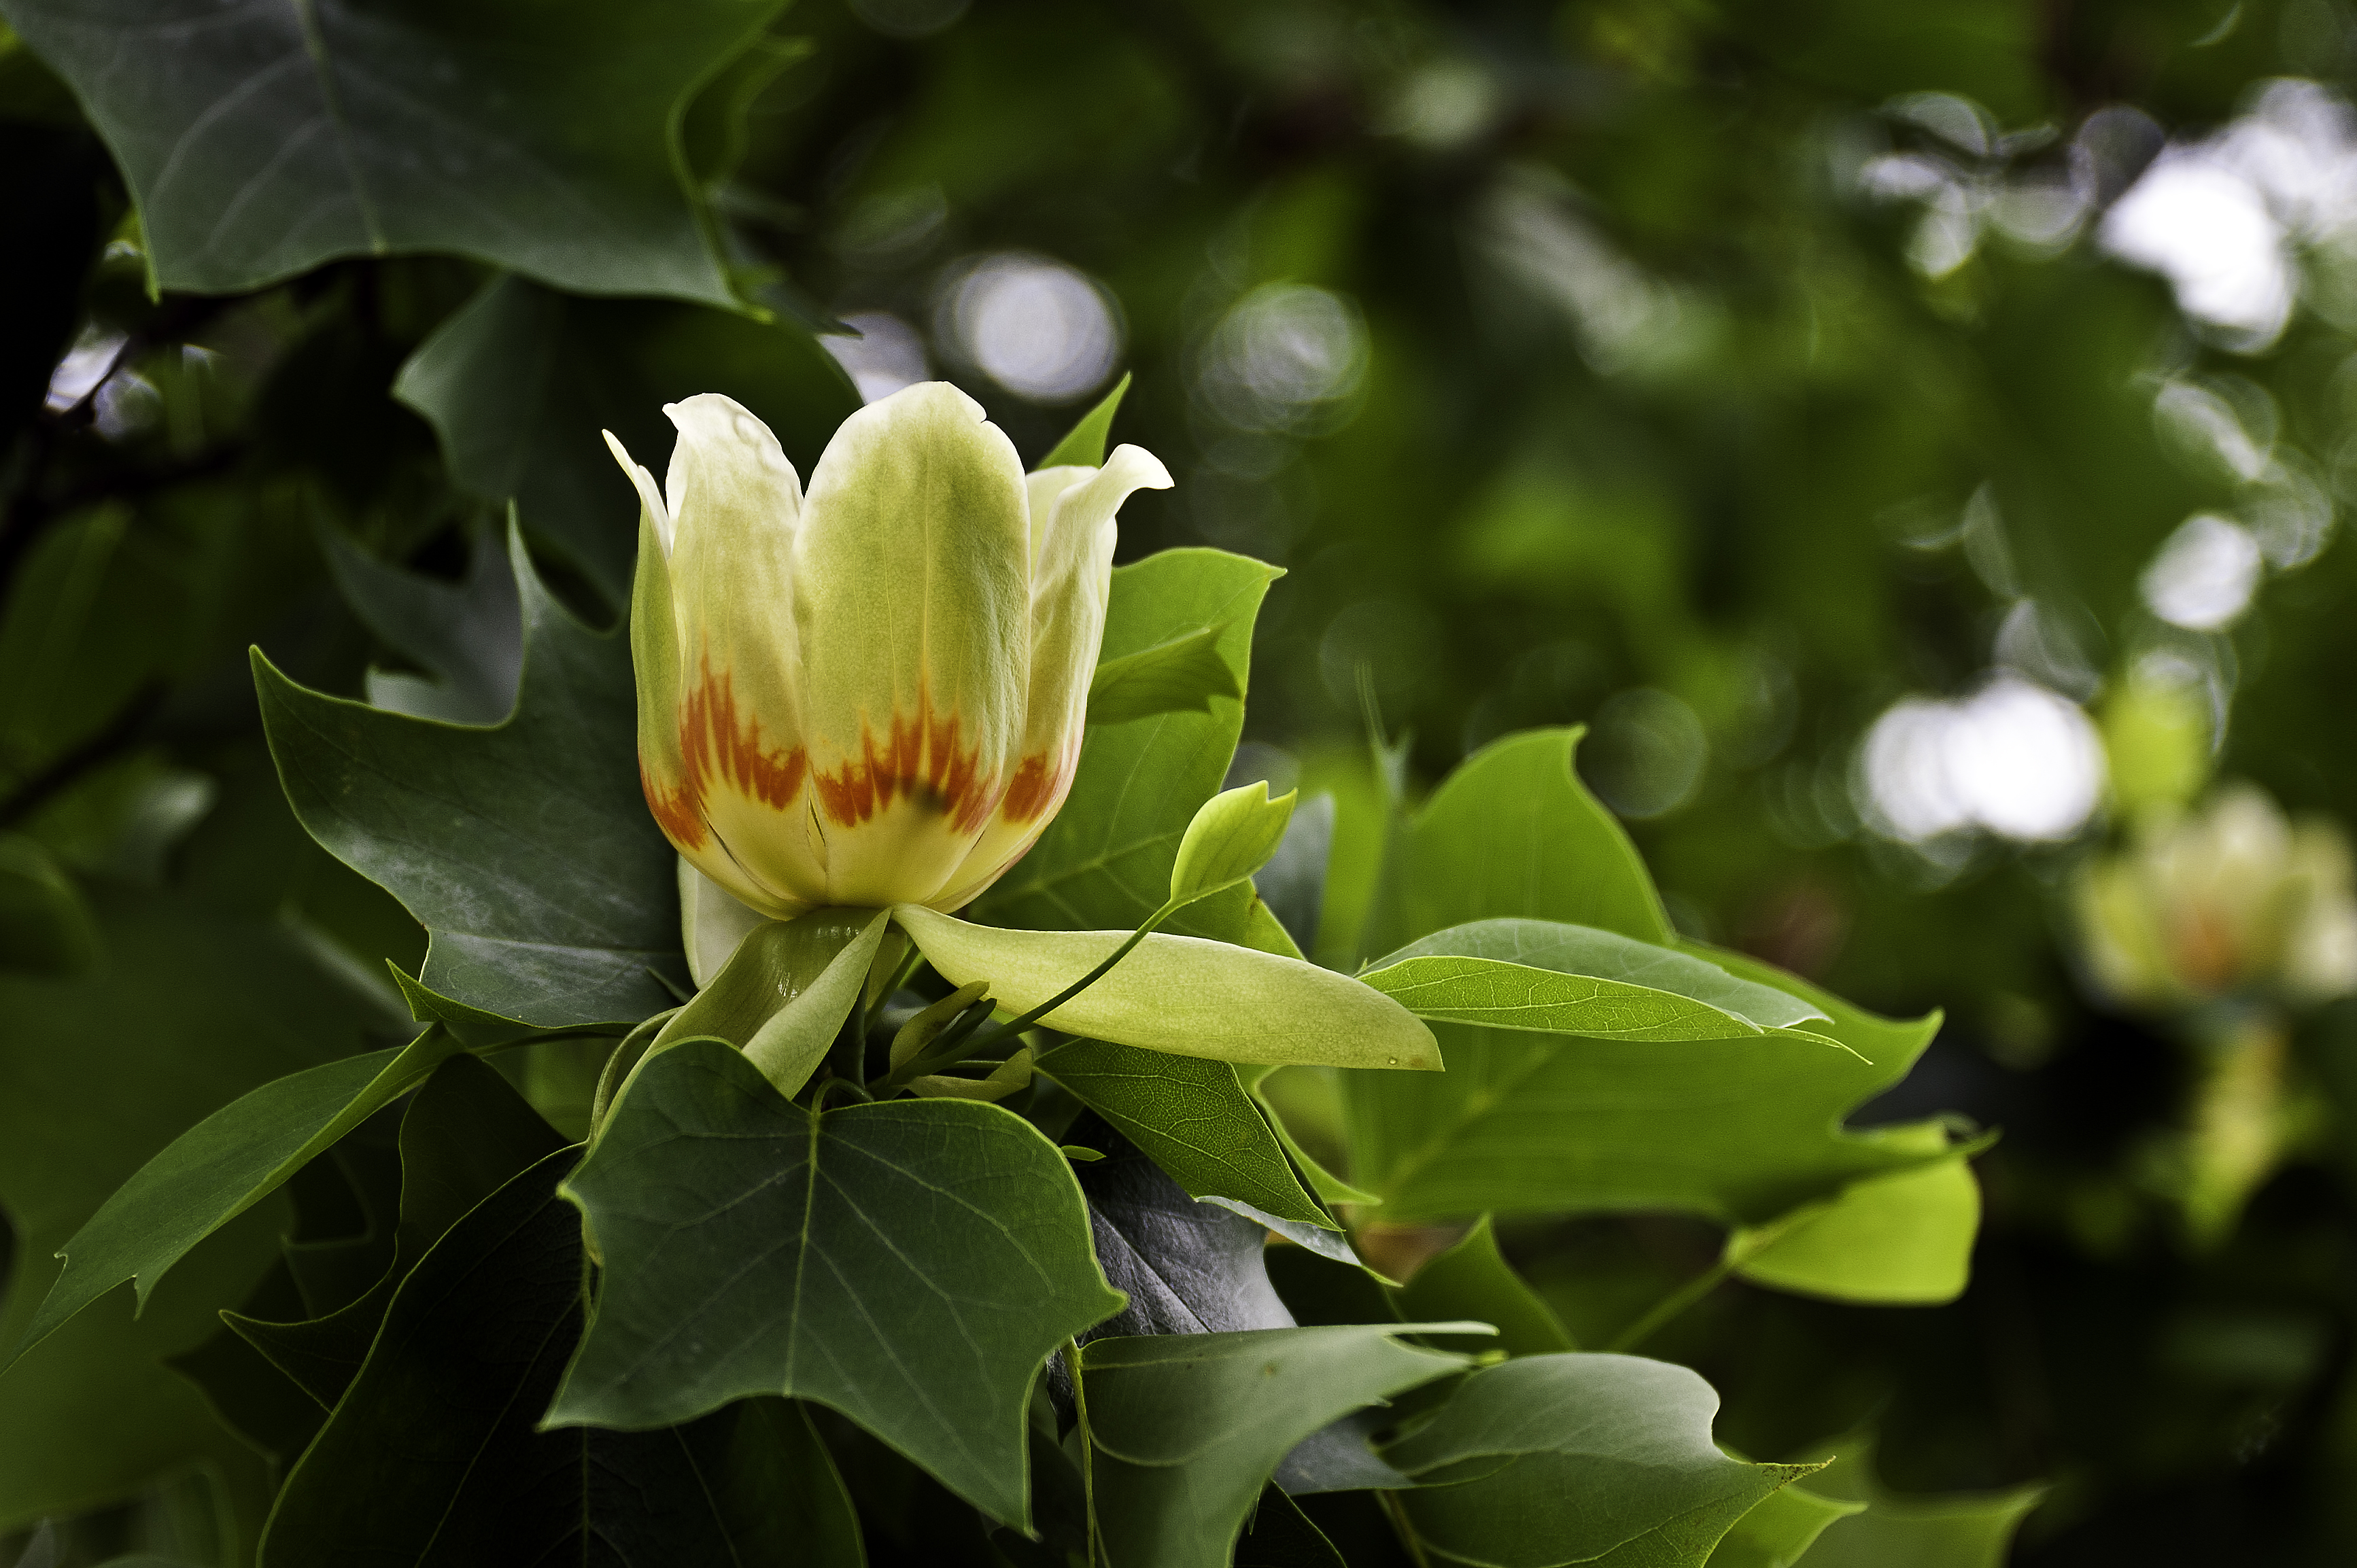 Spring in northern virginia stephen l tabone nature photography we mightylinksfo